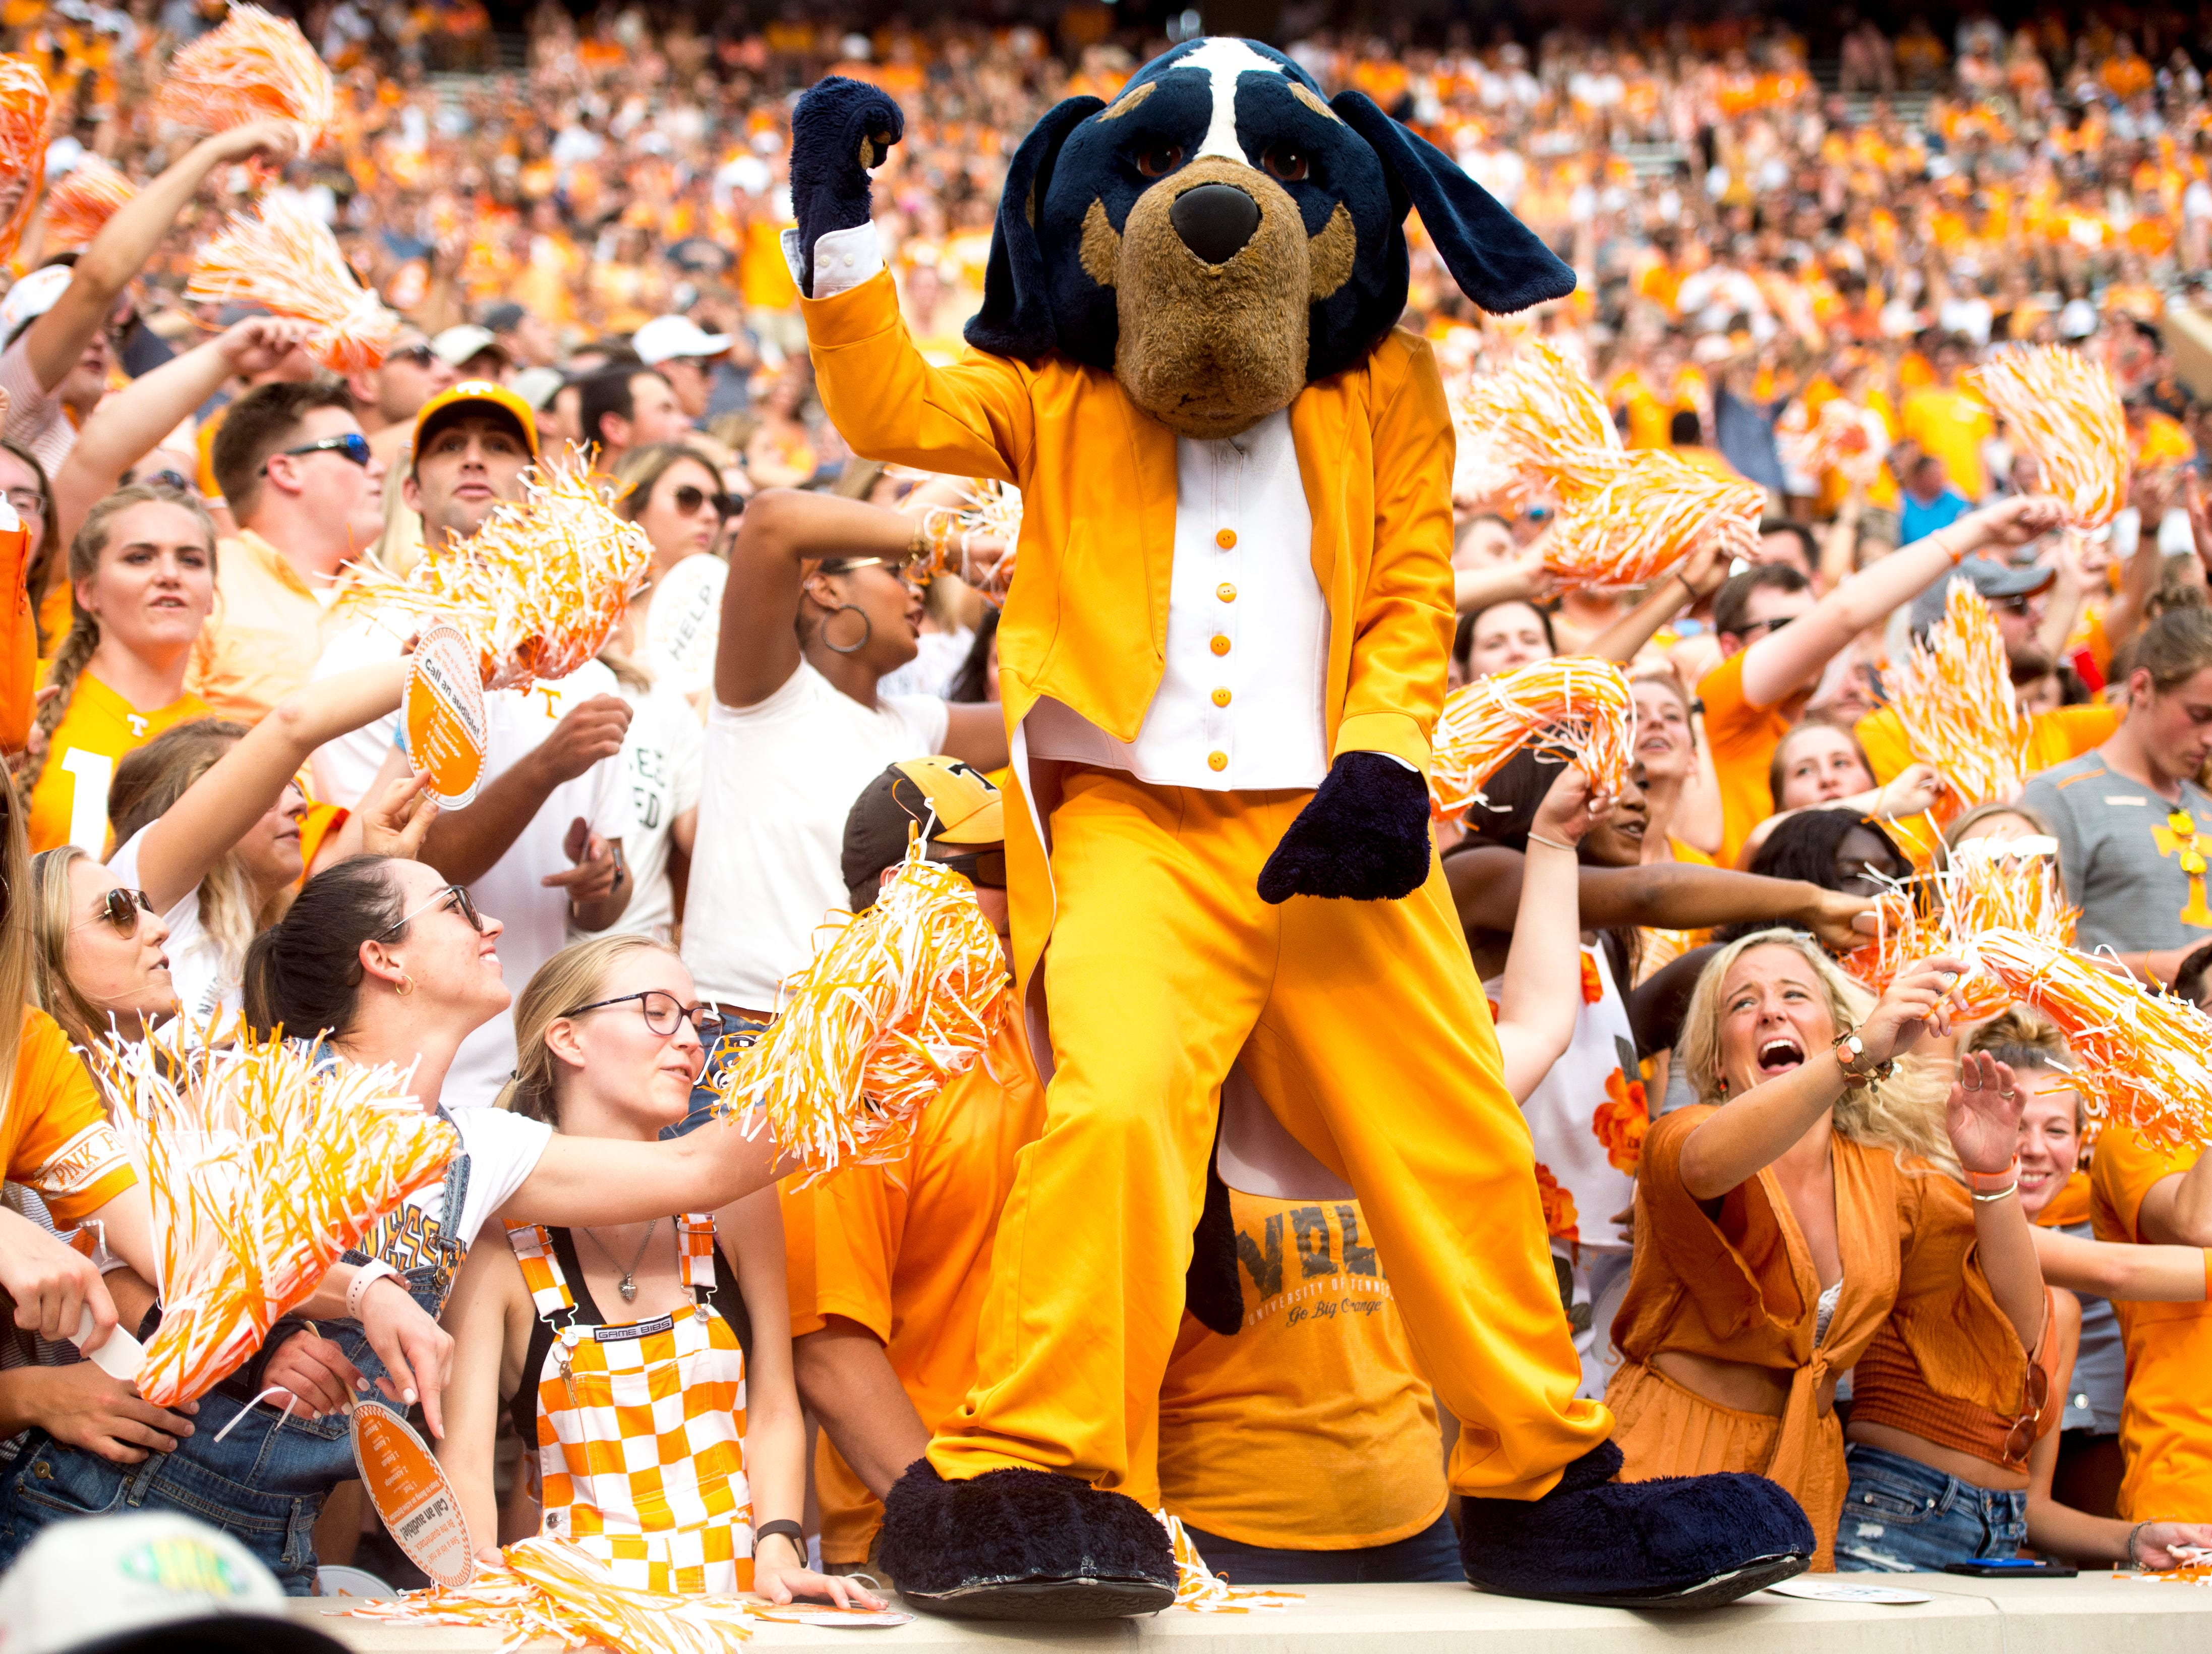 Smokey dances in the fan section during a game between Tennessee and ETSU at Neyland Stadium in Knoxville, Tennessee on Saturday, September 8, 2018.